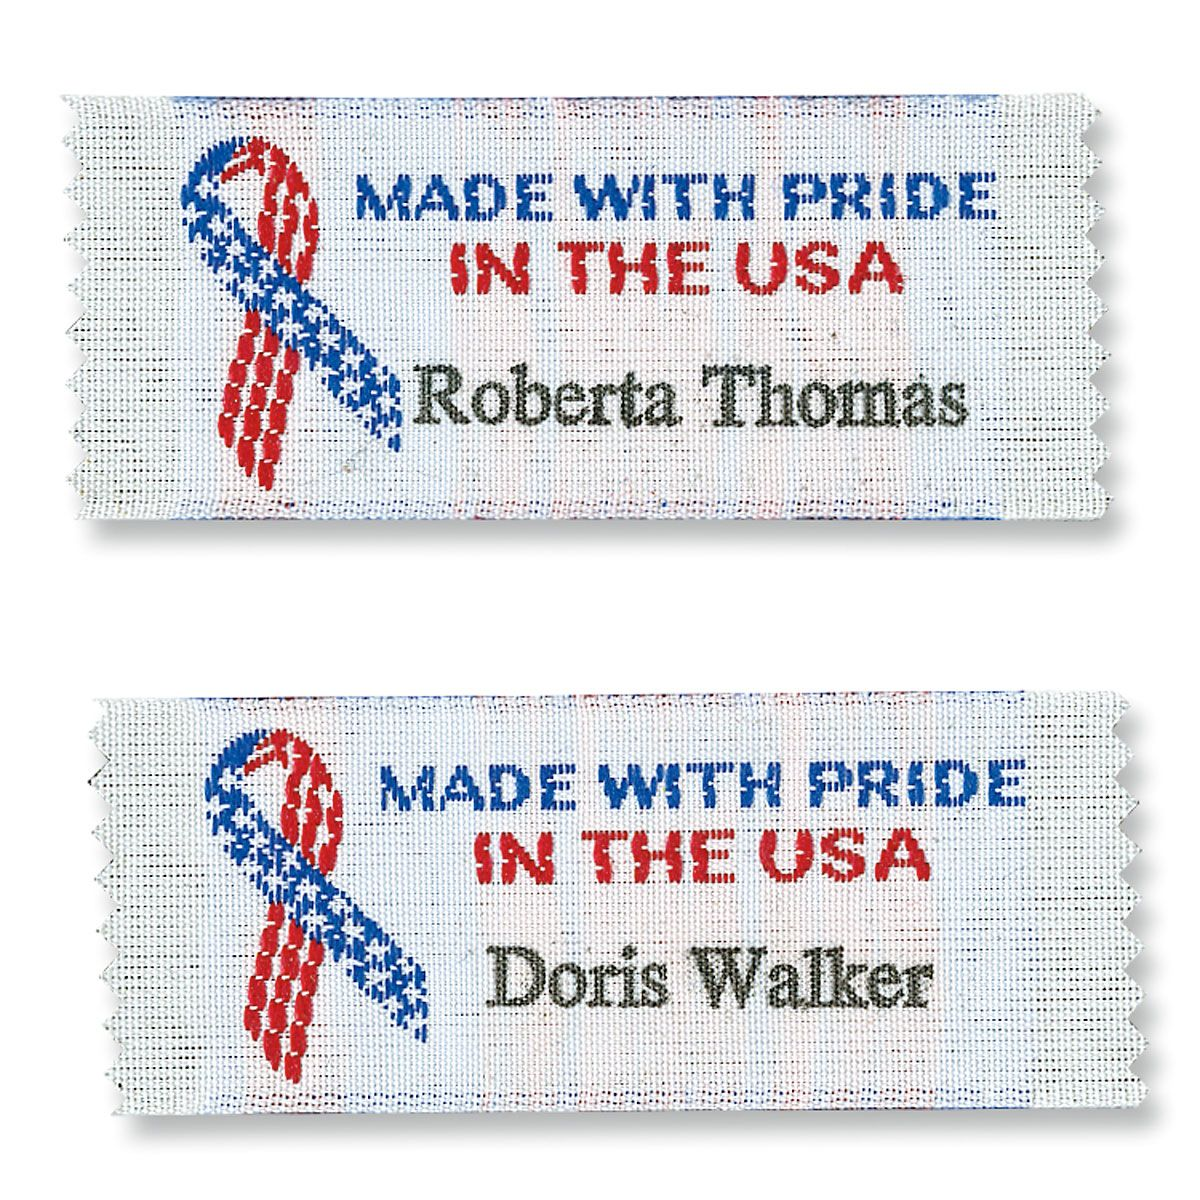 Made With Pride In The USA Sewing Labels Put a  signature  label on all your designs. Perfect for showing off your handiwork and avoiding lost clothing, colorfast 3/4  x 2 1/4 . 'Created by' personalized sewing labels are woven polyester, won't fray or fade, come in a set of 20, and are proudly made in the USA. Specify 1 line, up to 18 characters. Shipped directly from the manufacturer. Standard shipping only. Expedited shipping not available. Allow at least 4-6 weeks for delivery unless otherwise noted. Cannot be sent outside the 48 contiguous states, or to P.O. Box, APO/FPO, or foreign addresses.